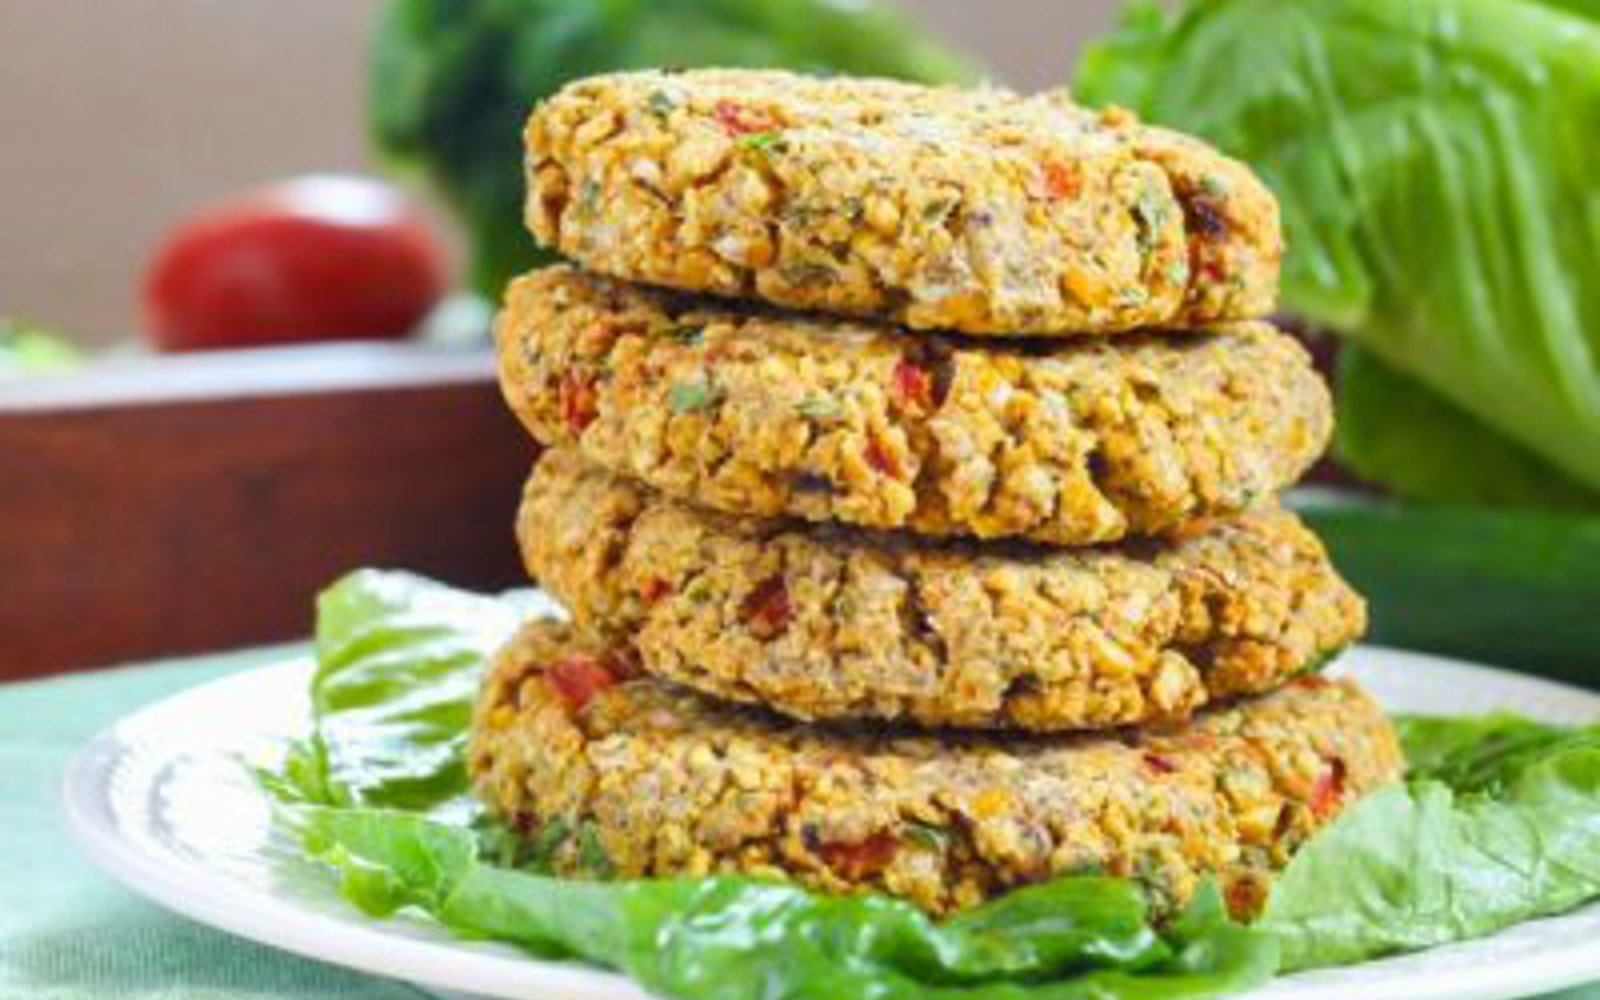 Vegan Roasted Red Pepper Chickpea Burger